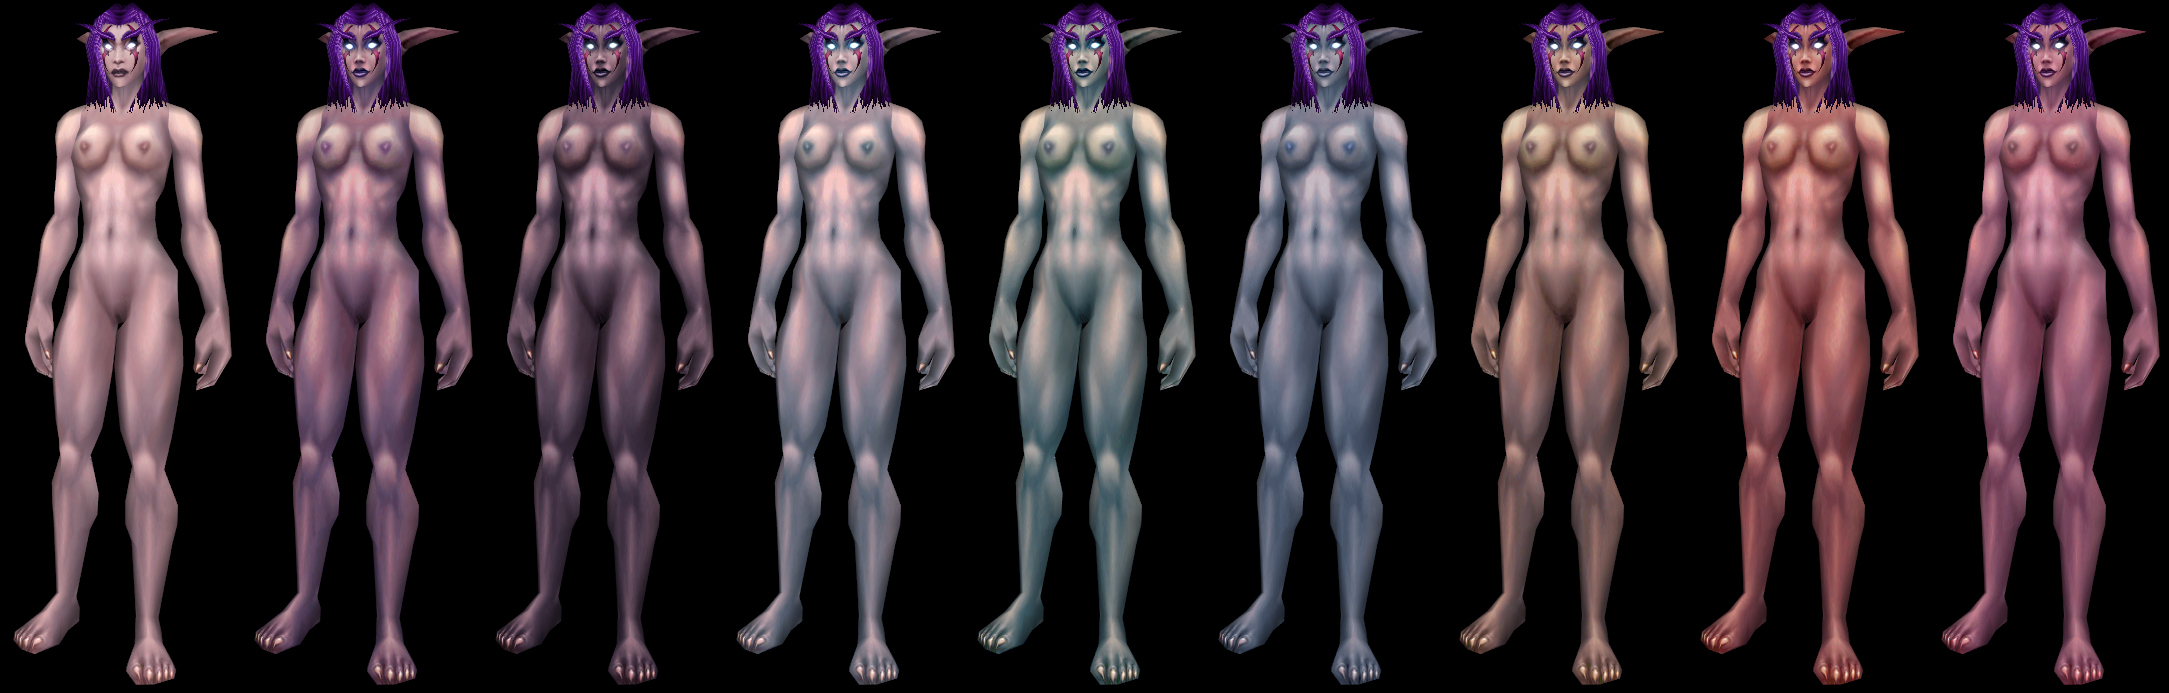 Nude mode warcraft sex picture